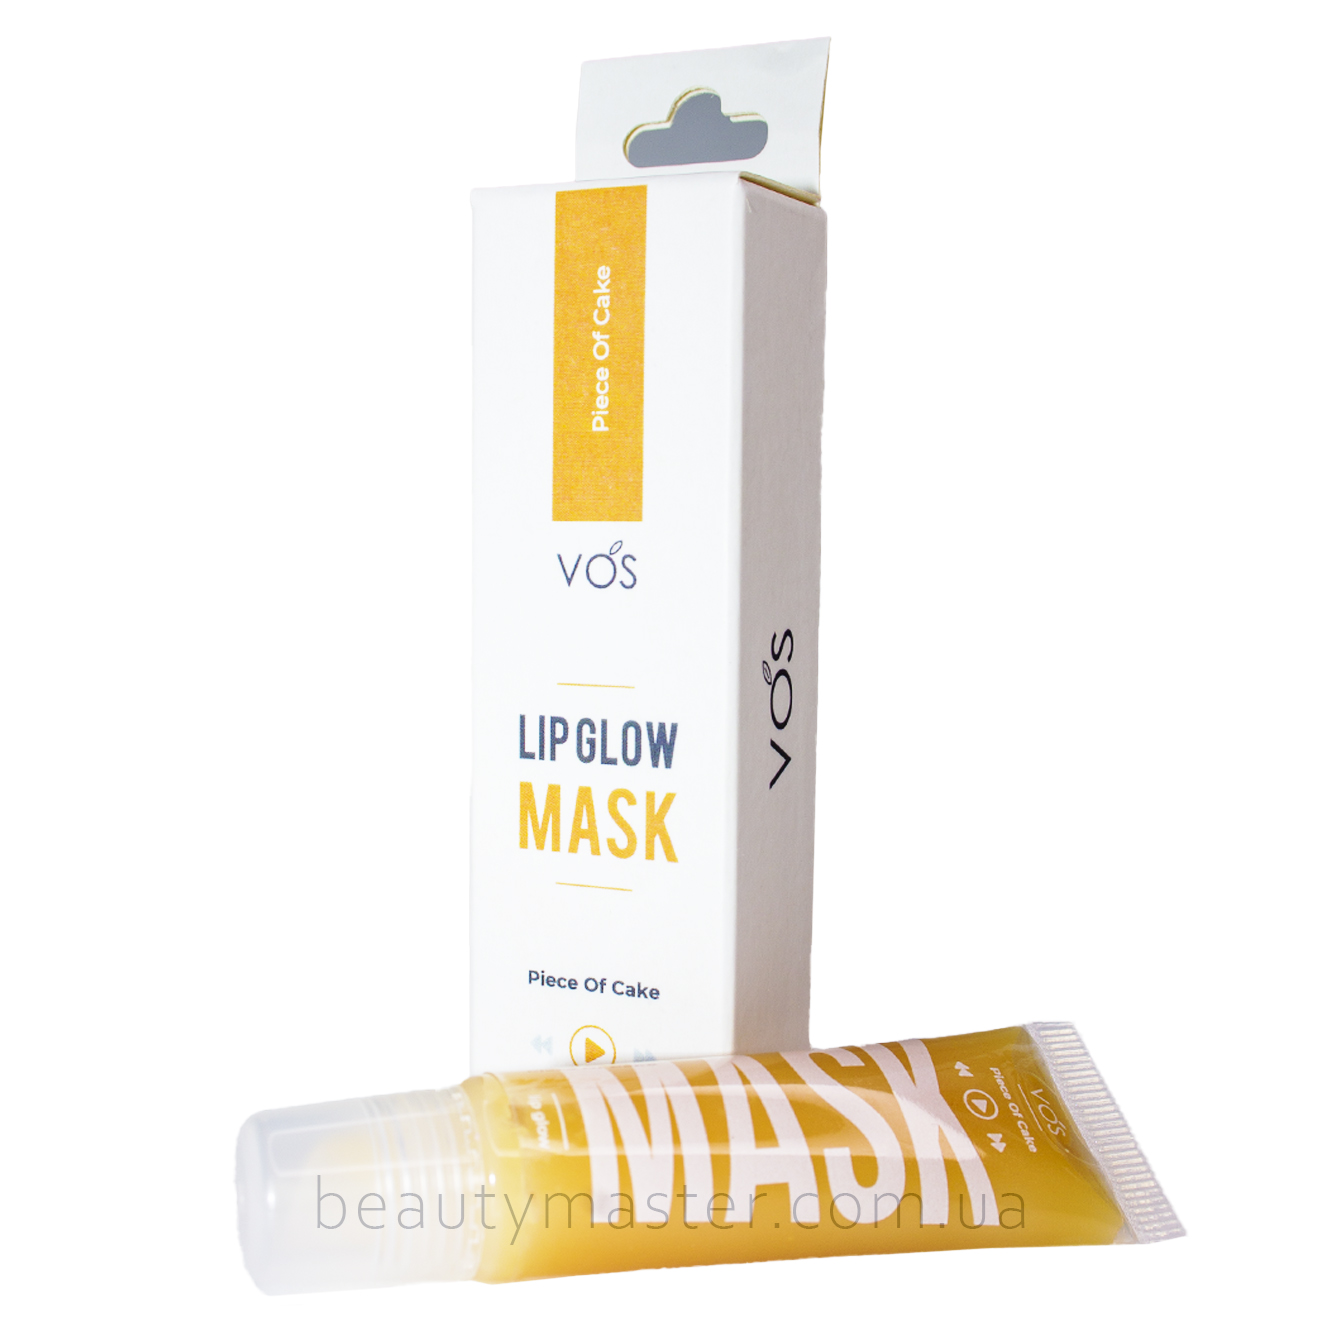 VOS Lip glow Mask piece of cake 12 мл